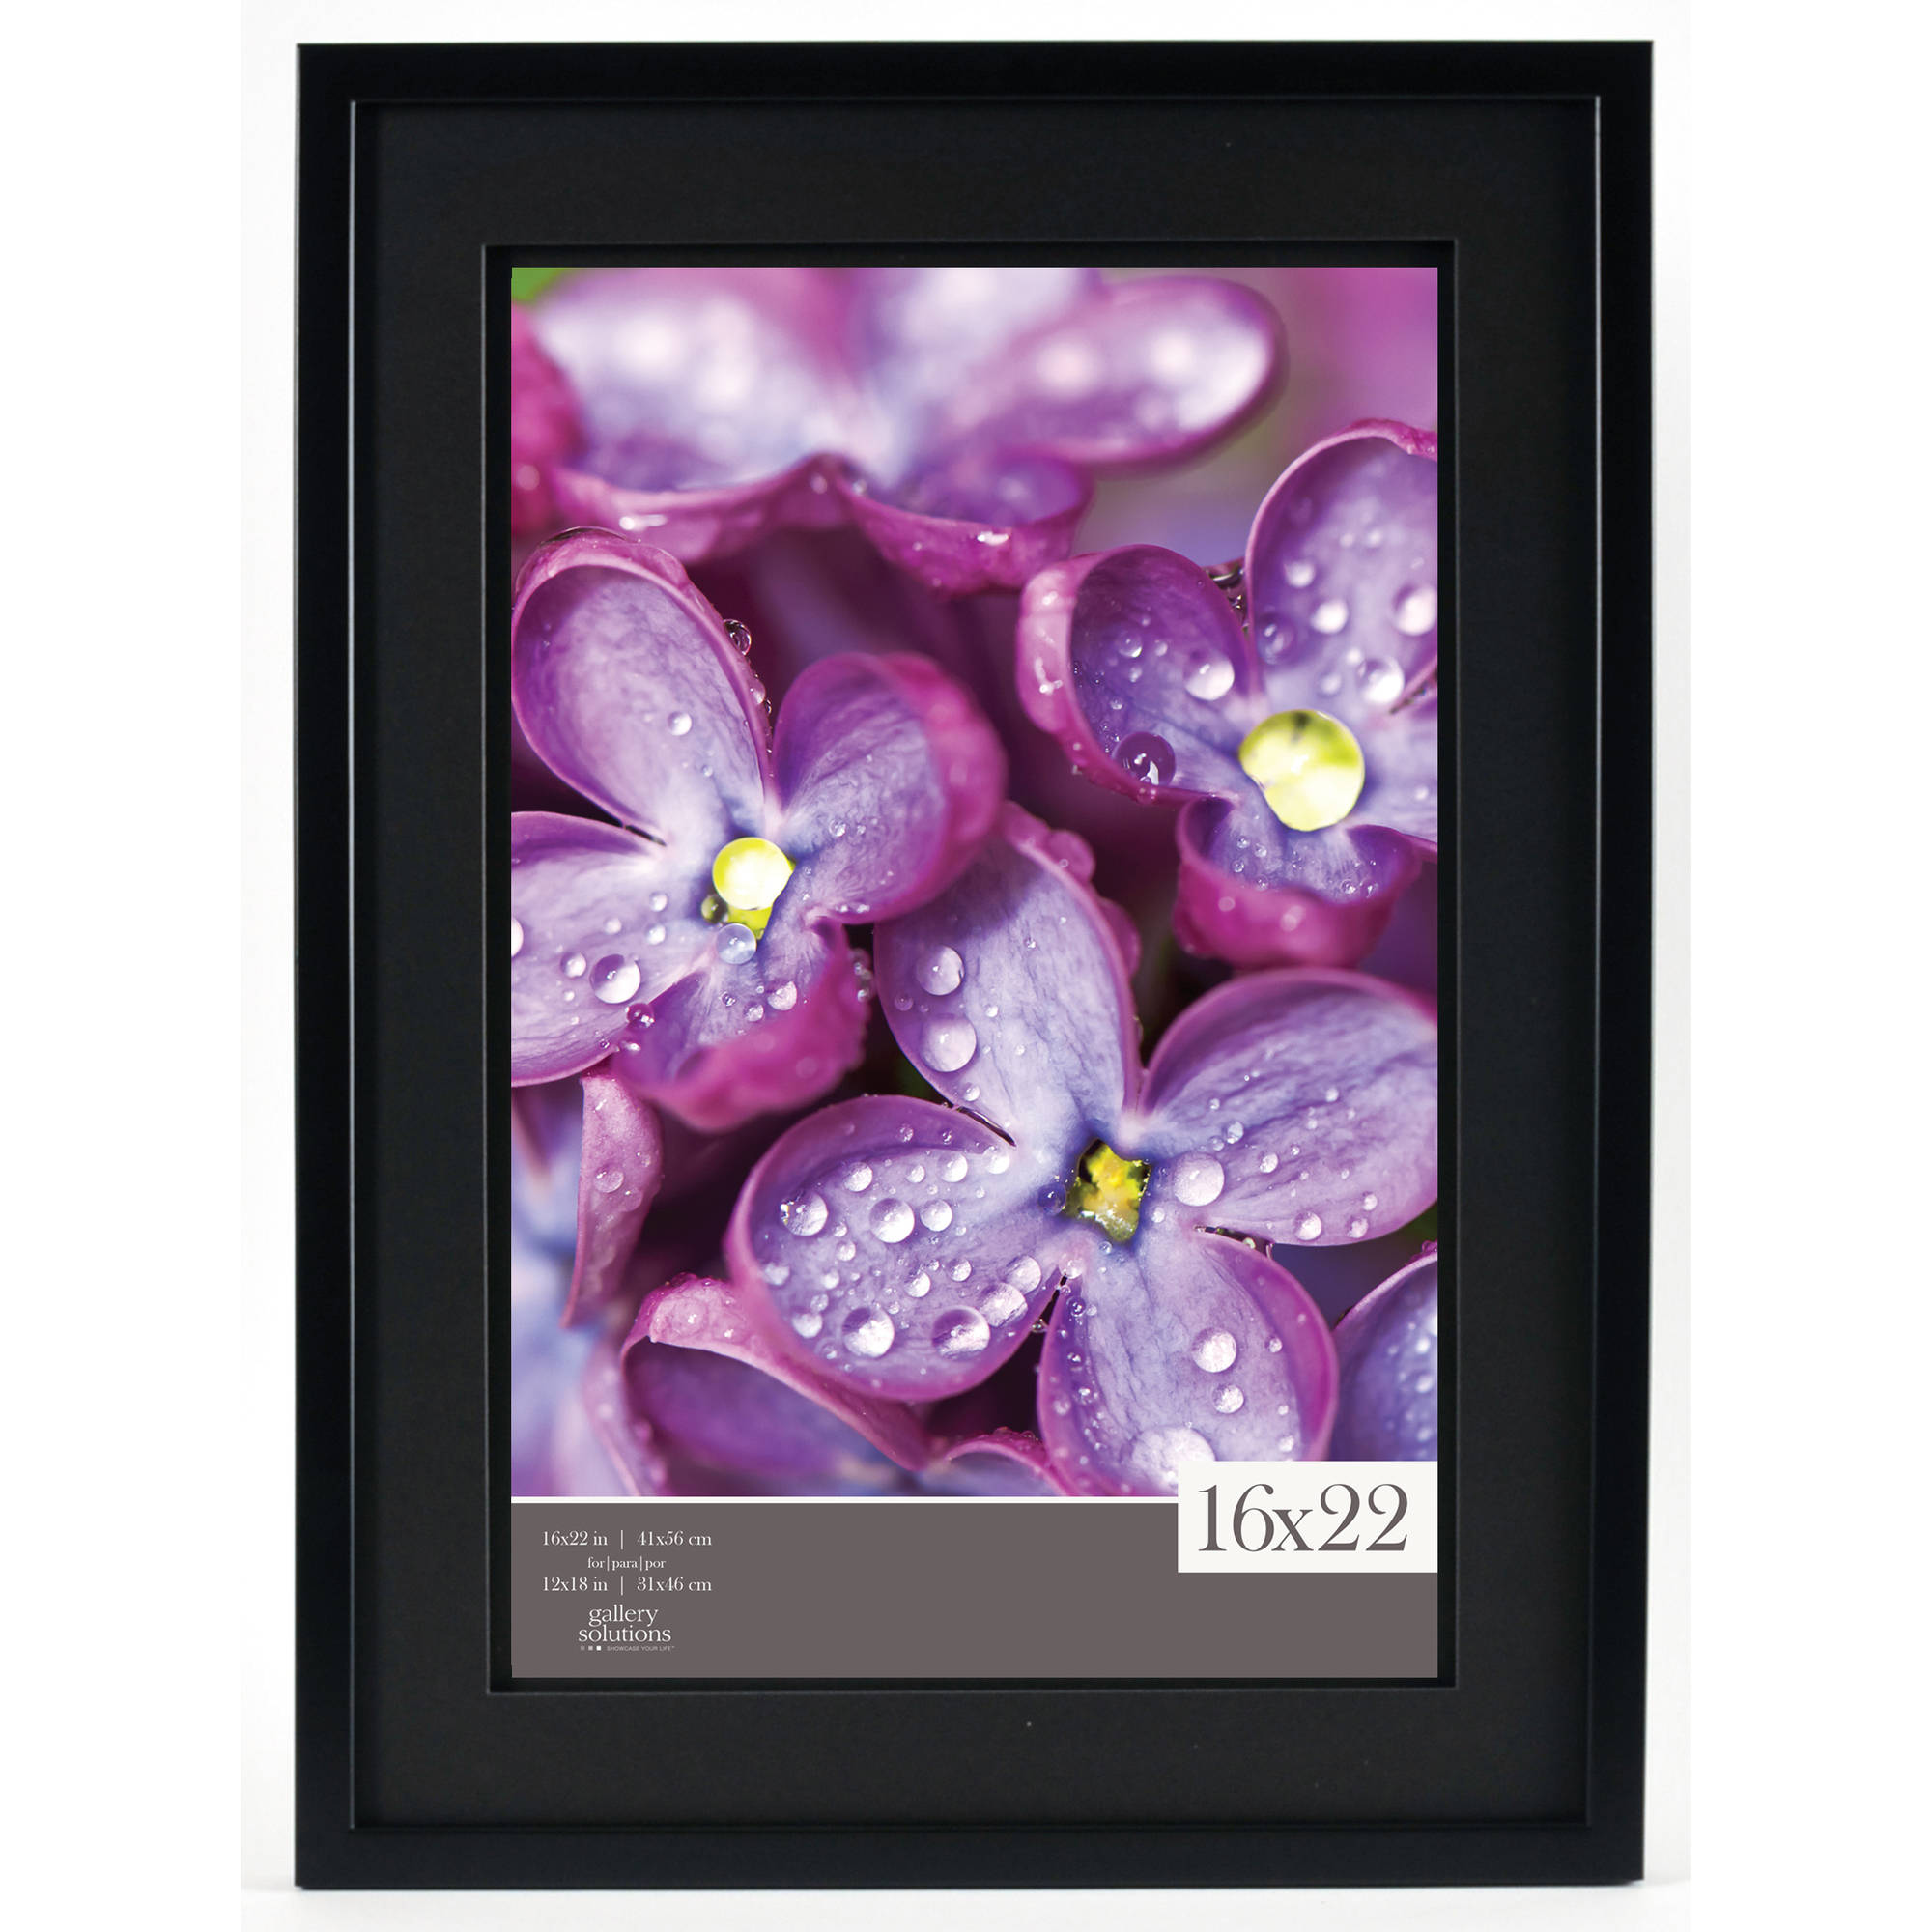 Gallery Solutions Black Matted Airfloat Wall Frame by Generic